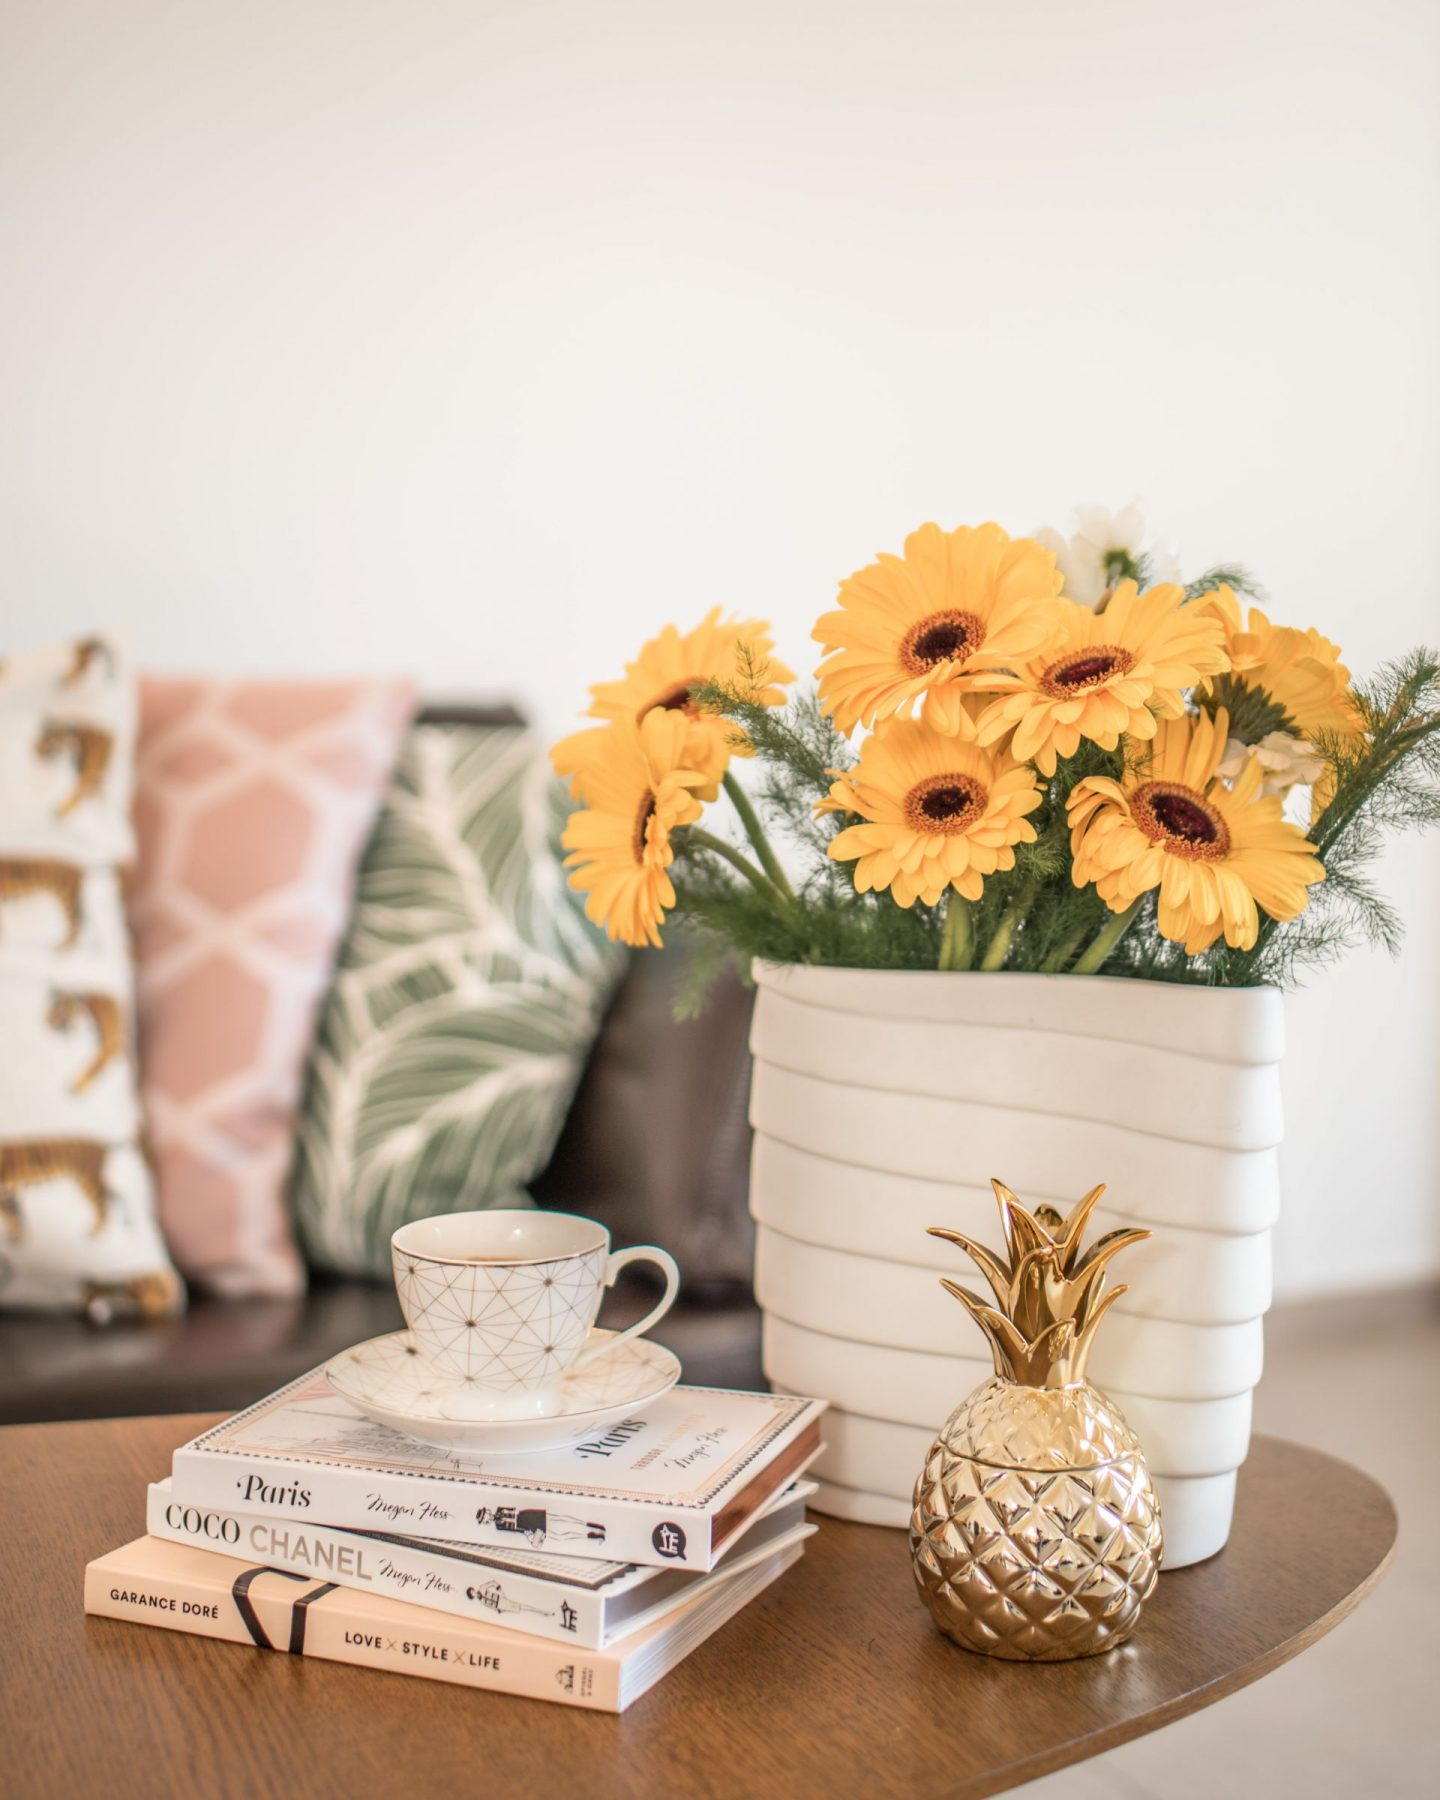 Make your Home Feel like a Sanctuary with These Top Tips